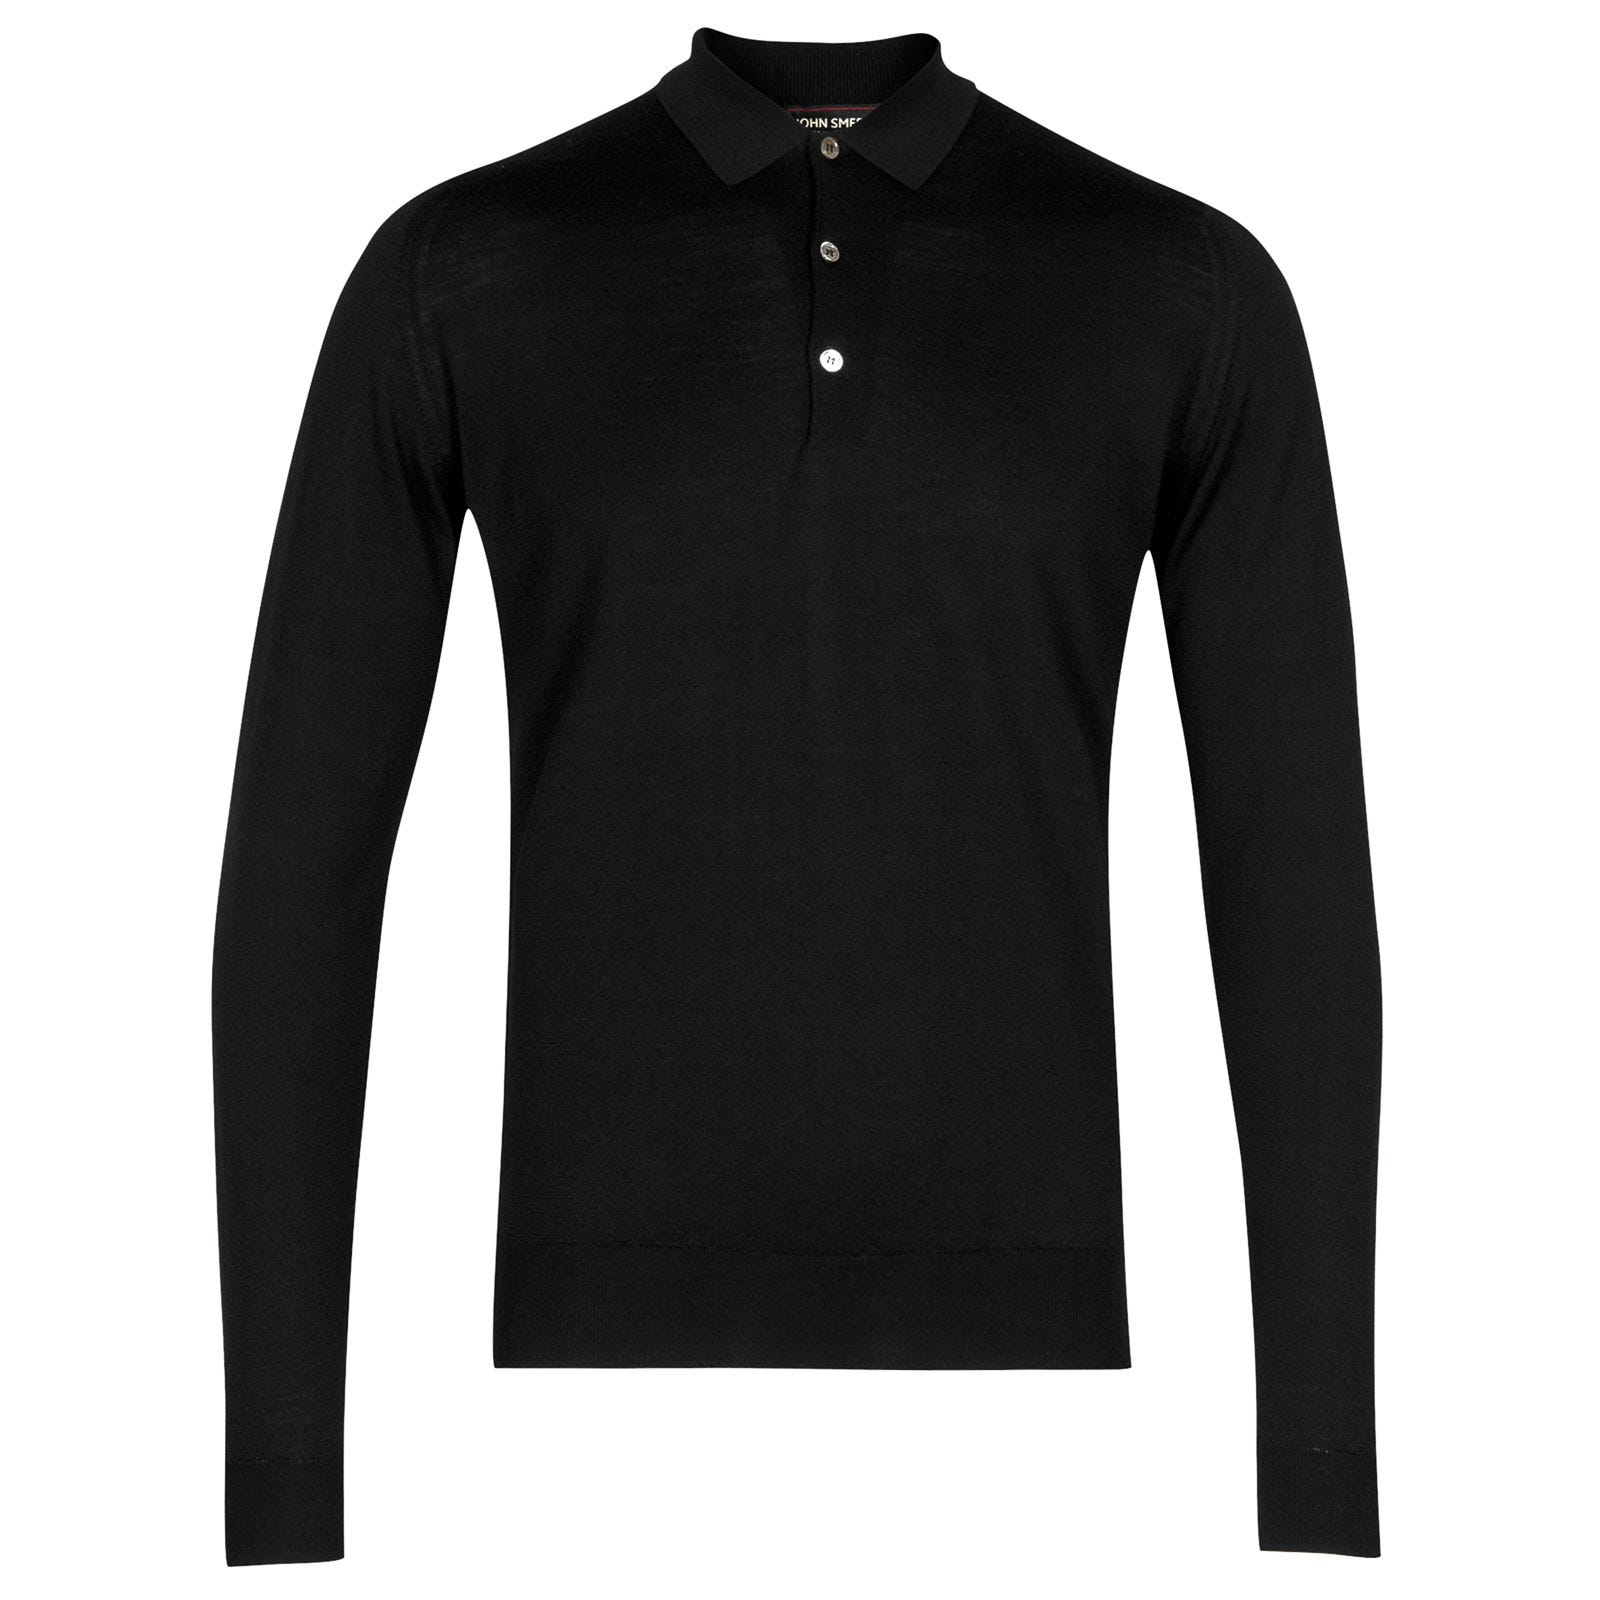 John Smedley belper Merino Wool Shirt in Black-M